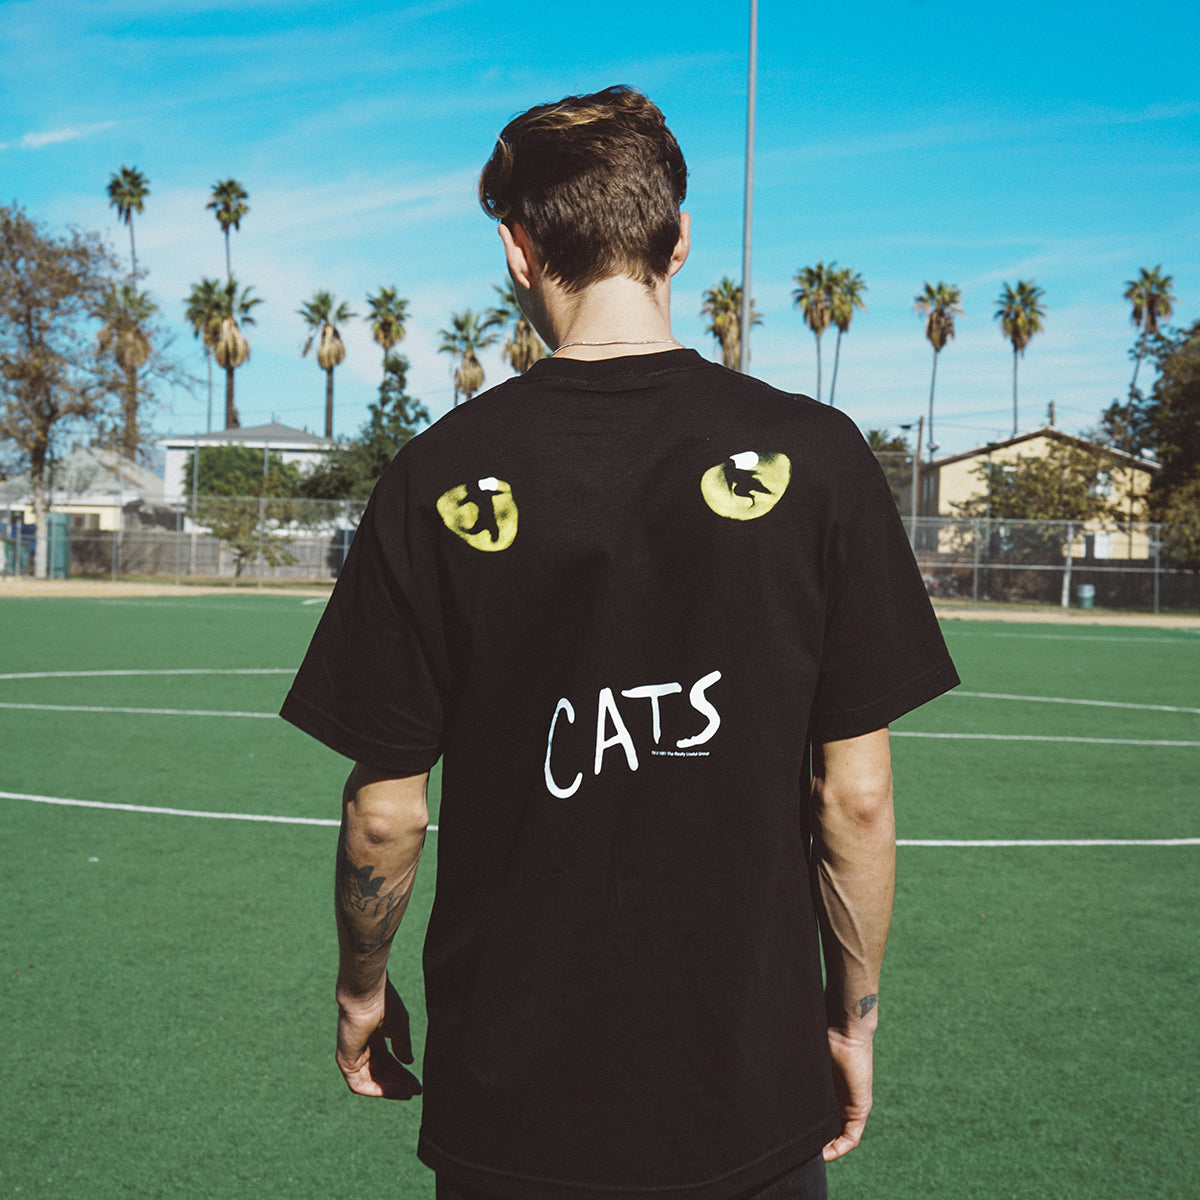 The Hundreds X Cats